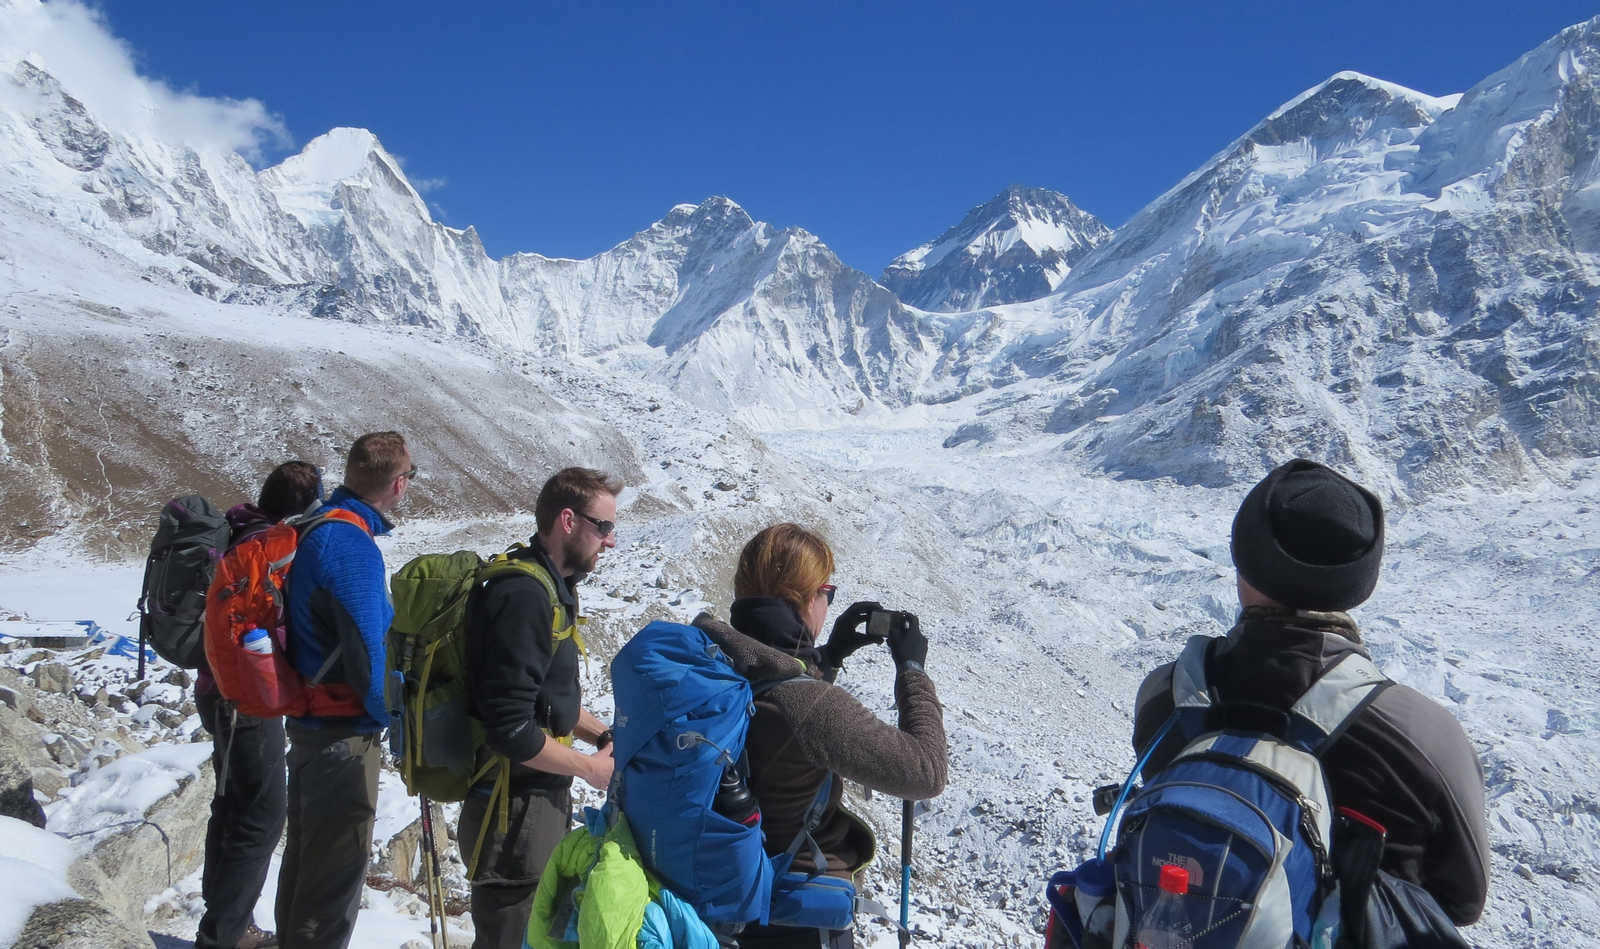 Everest Base Camp trek in winter | Best time for Everest Base Camp Trek